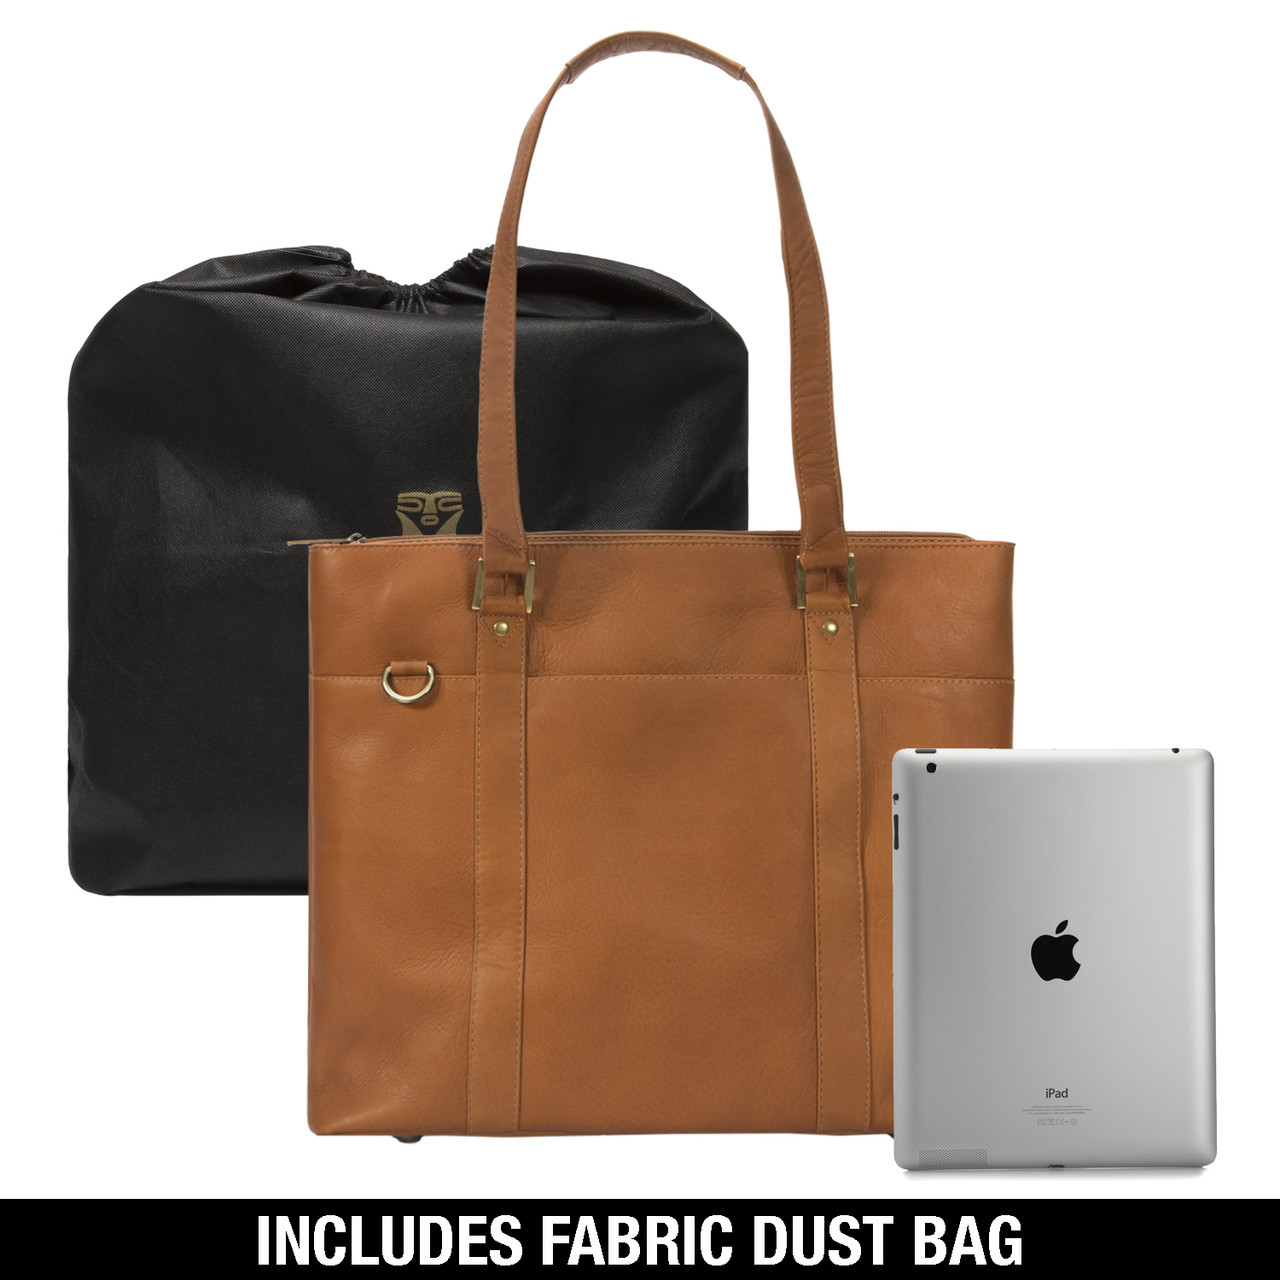 Muiska - Taipei - 15.4-inch women's laptop business tote bag fits an iPad perfectly comes with dust bag